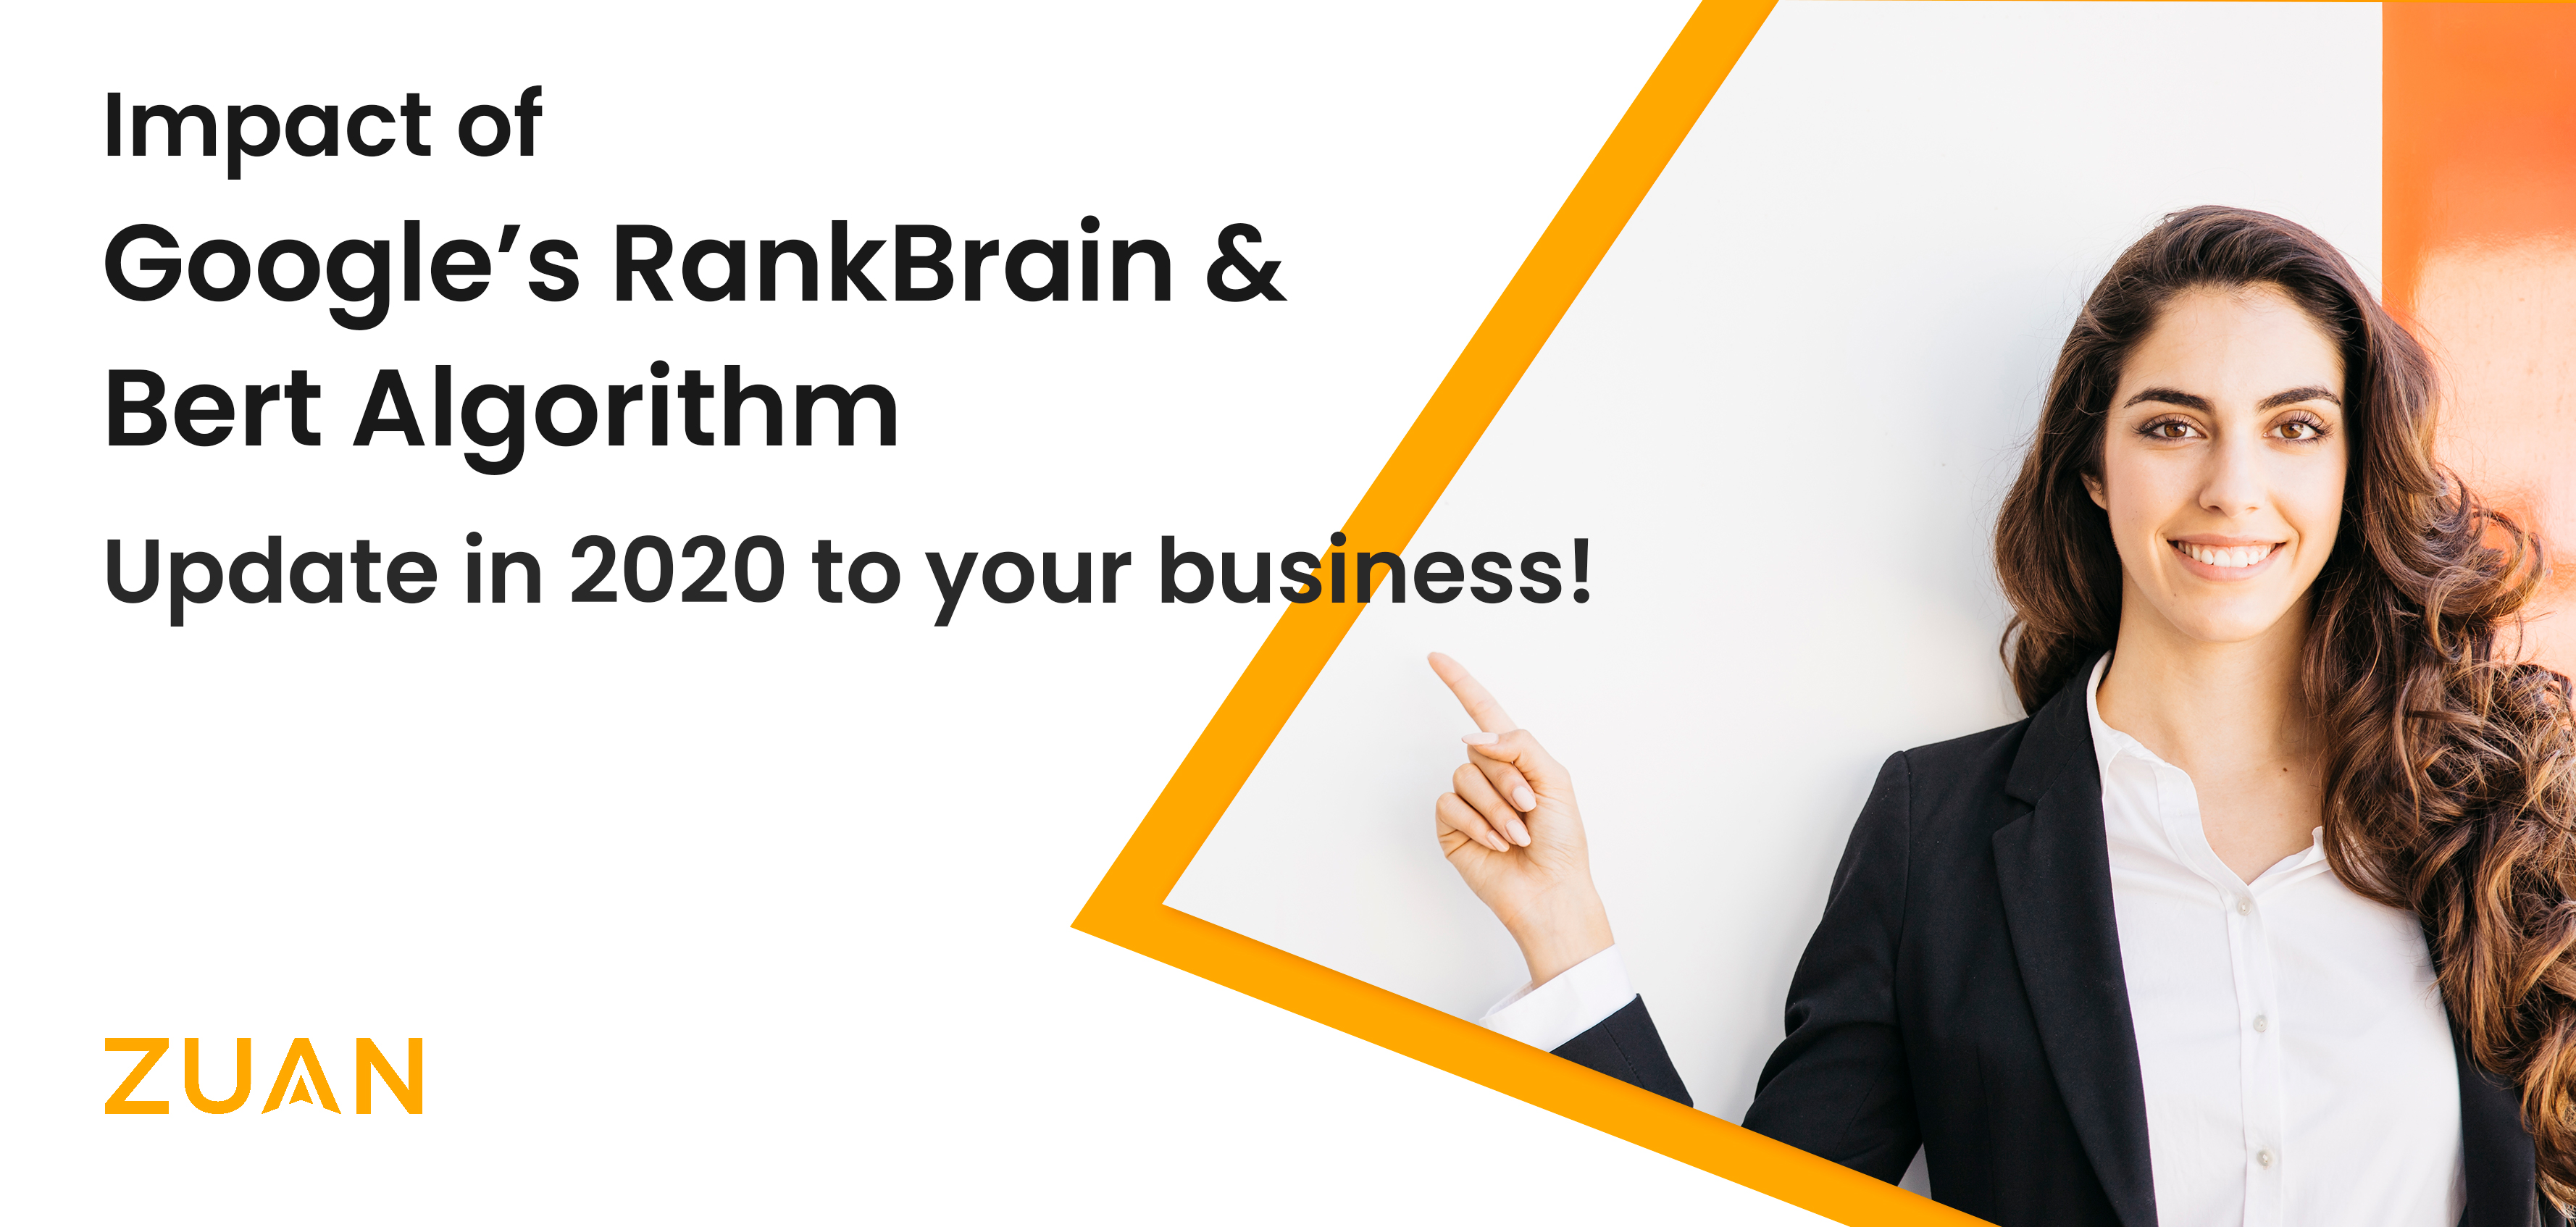 Impact of Rankbrain and BERT alagorithm to business